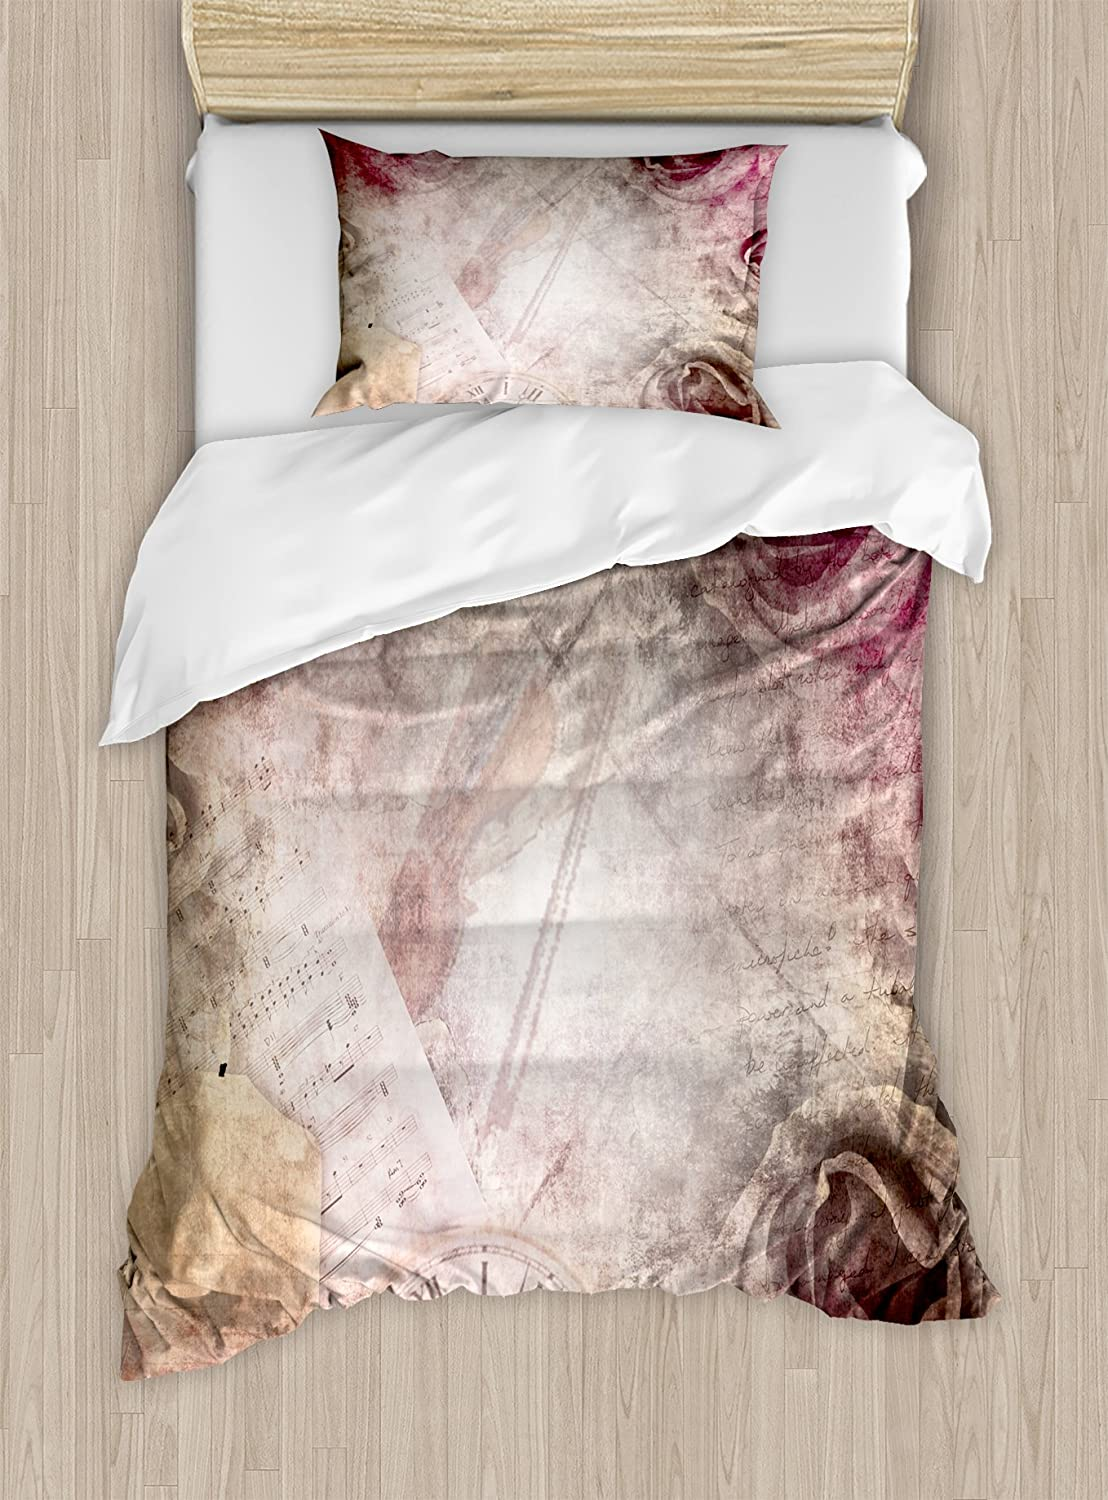 Ambesonne Rose Duvet Cover Set, Grunge Style Vintage Inspired Rose Design on Retro Elements Violin Time Music, Decorative 2 Piece Bedding Set with 1 Pillow Sham, Twin Size, Beige Pink